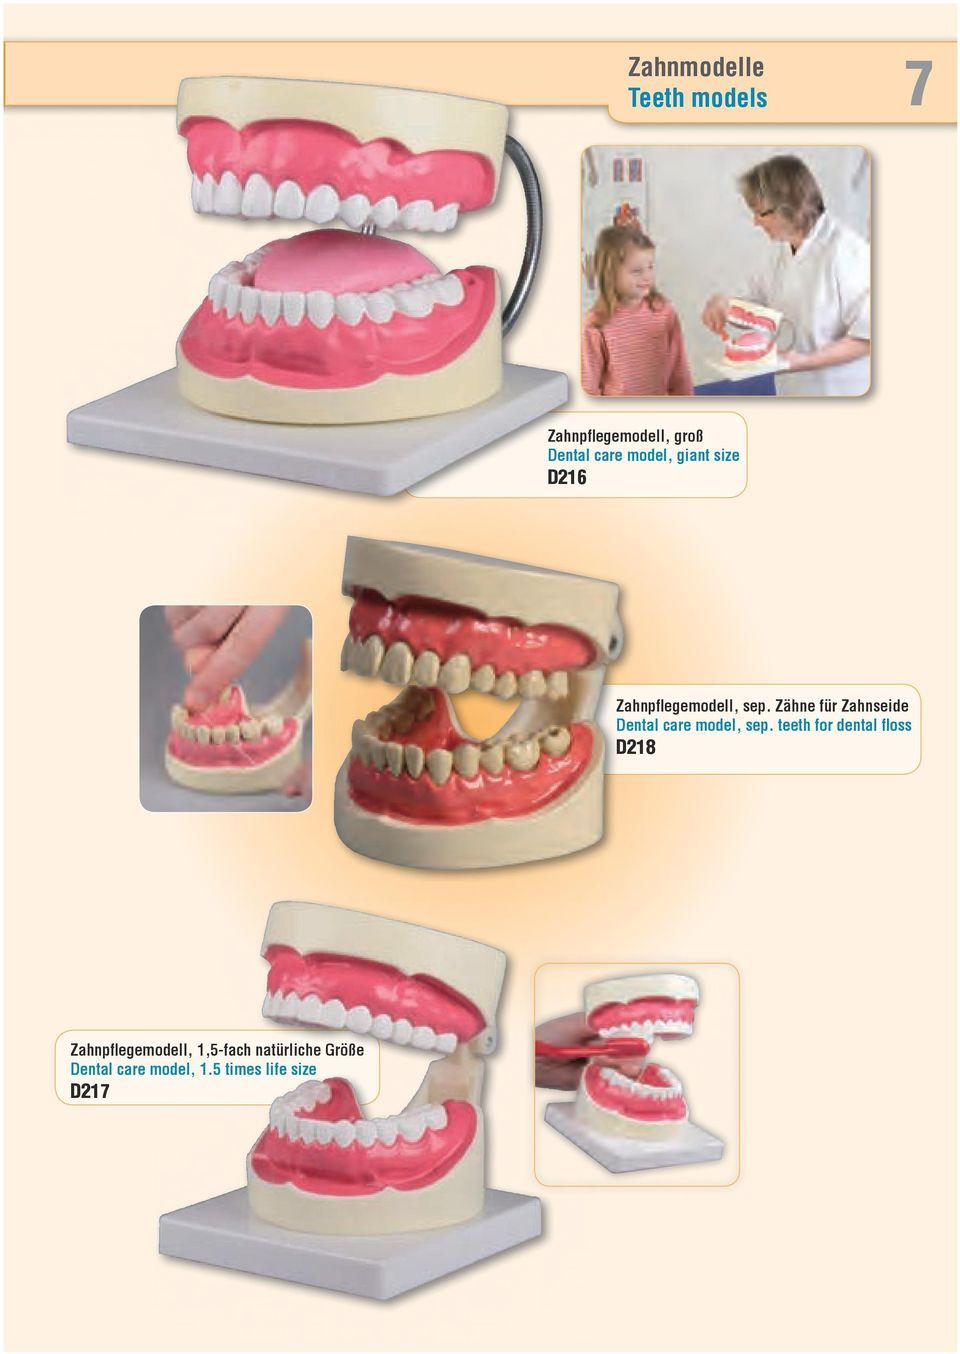 Zähne für Zahnseide Dental care model, sep.